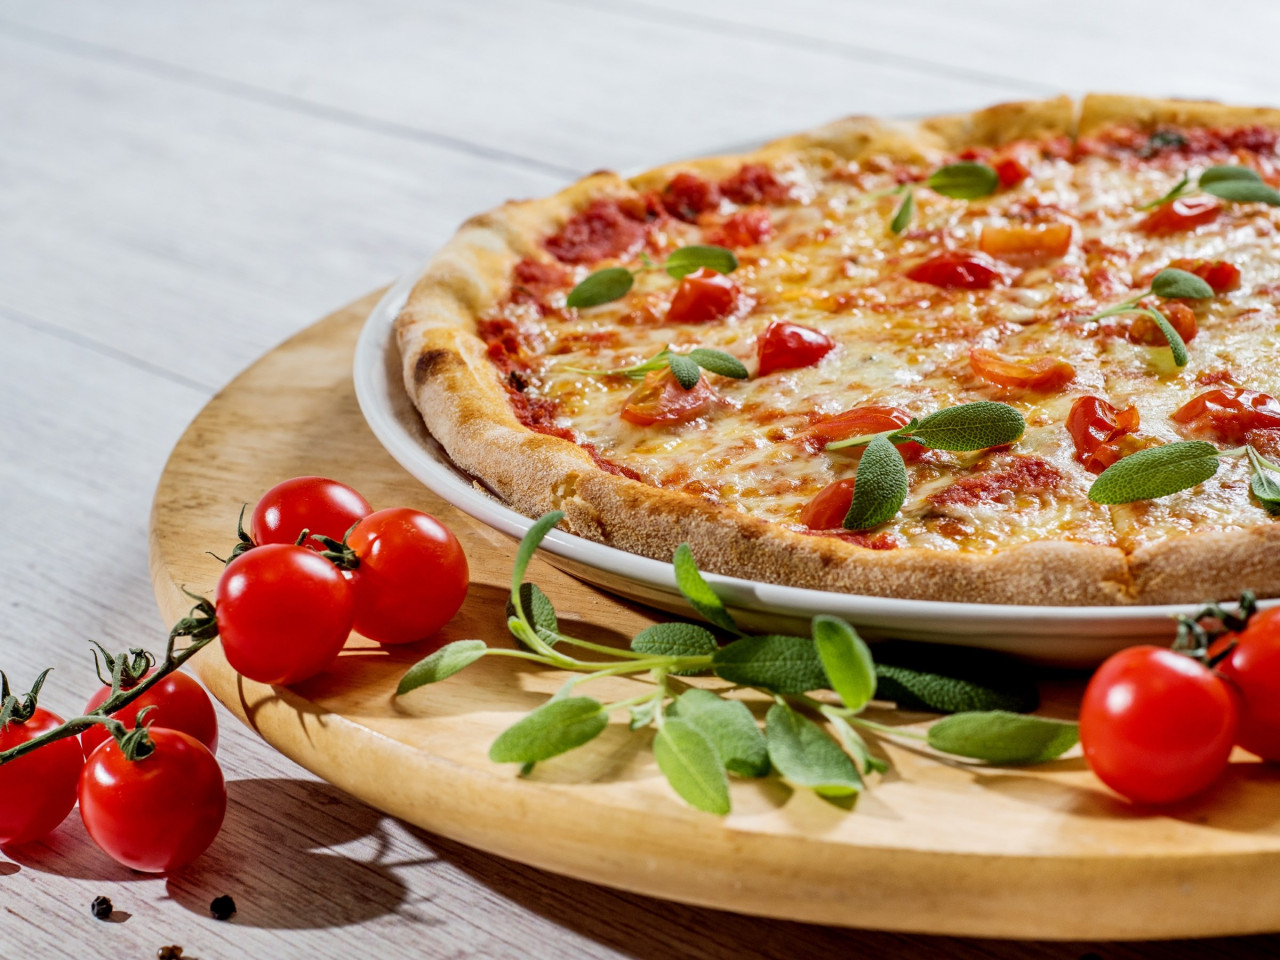 Pizza with cheese and tomatoes wallpaper 1280x960